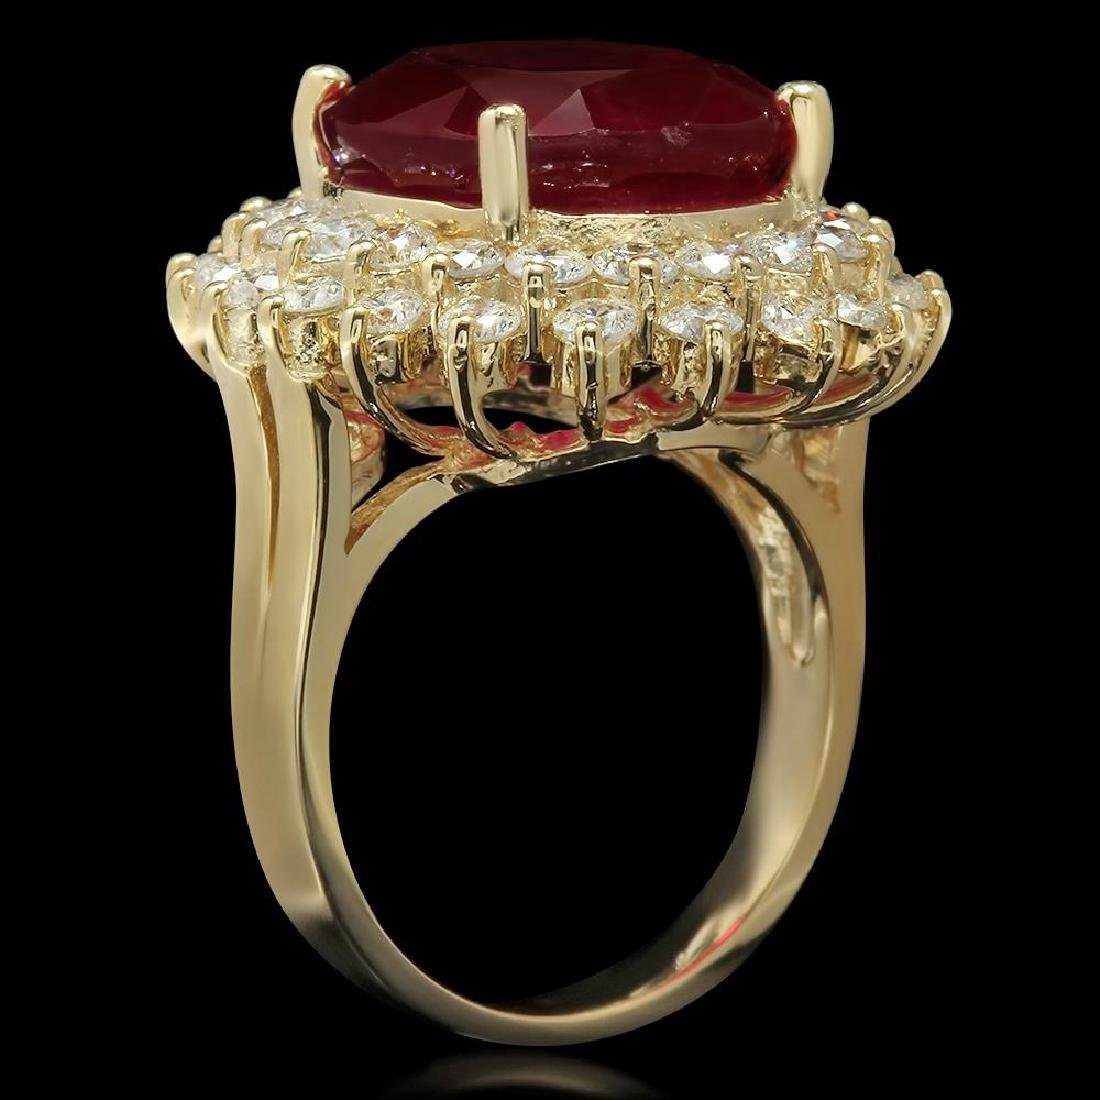 14K Gold 14.38ct Ruby 2.38ct Diamond Ring - 2